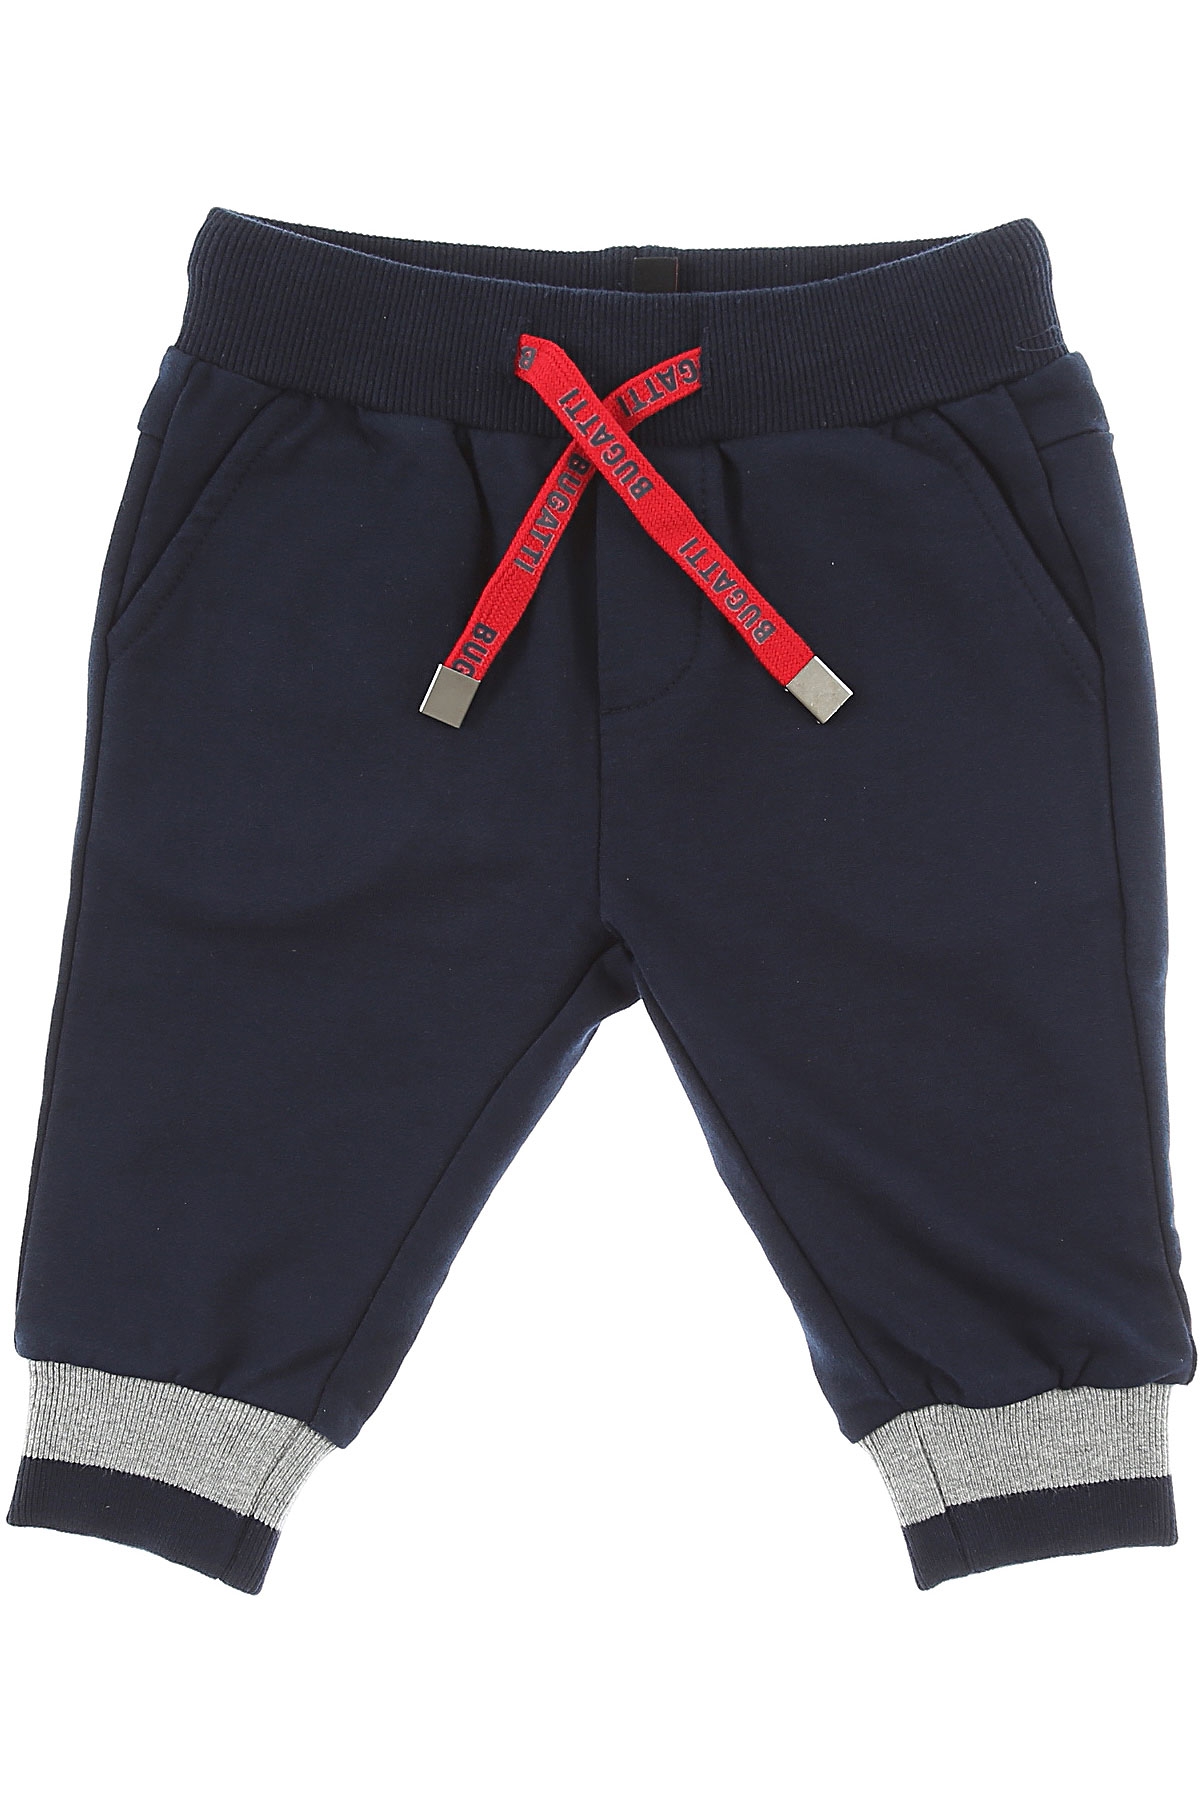 Image of Bugatti Baby Pants for Boys, Navy Blue, Cotton, 2017, 12M 18M 6M 9M